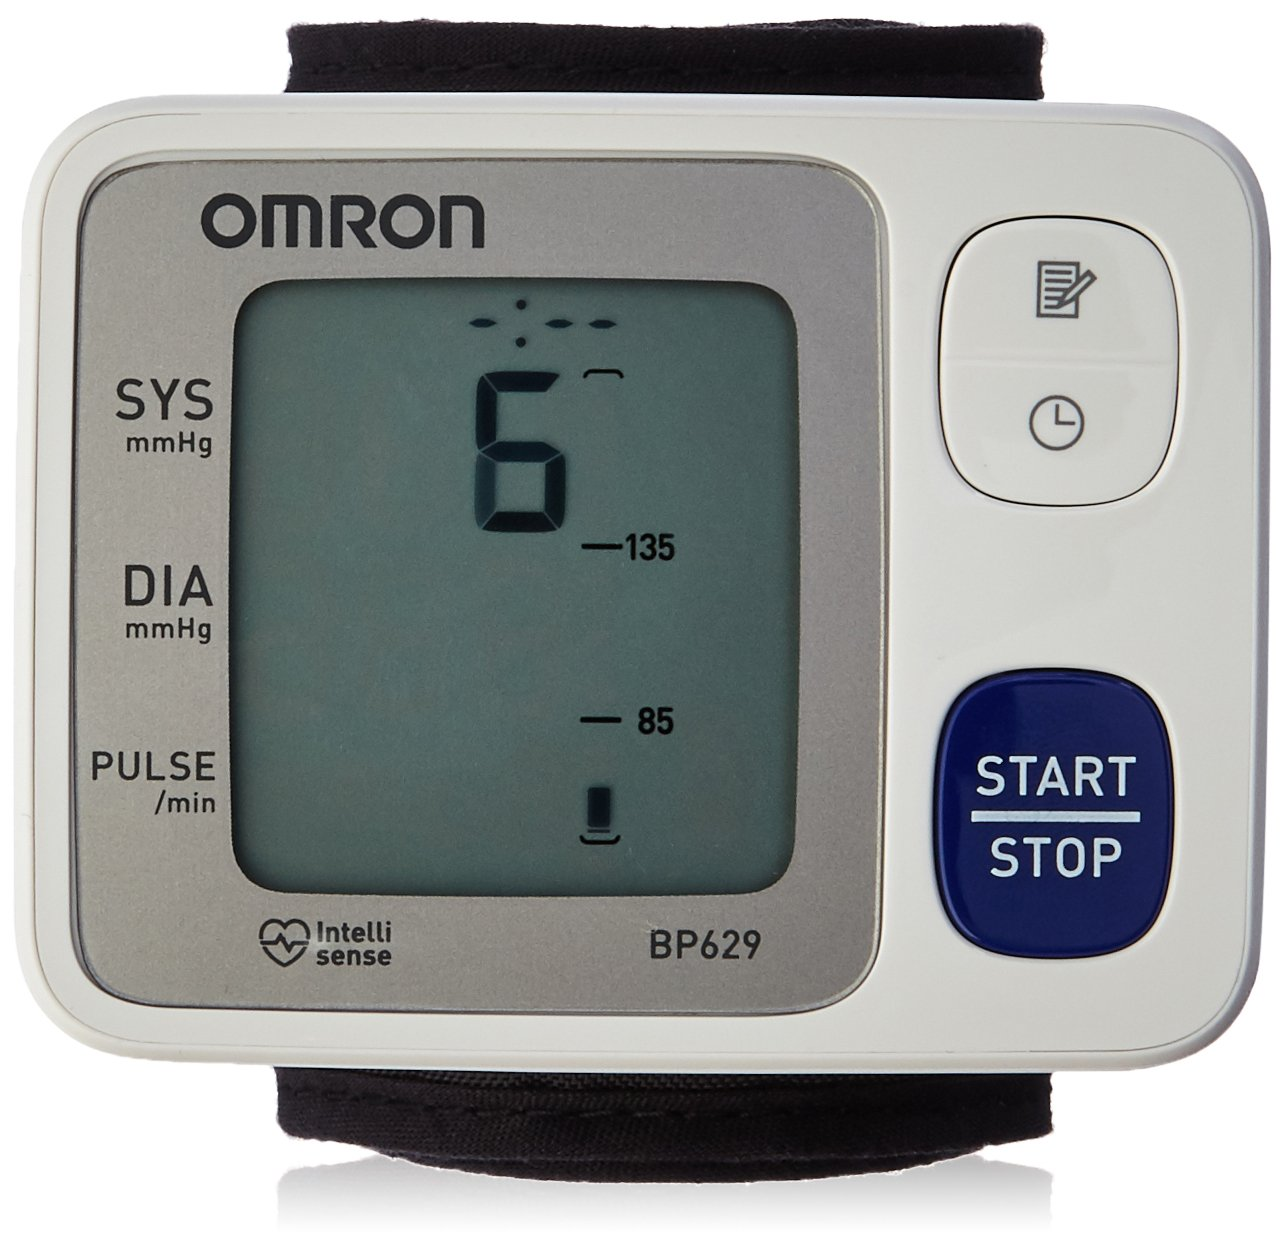 OMRON HEAL 3 Series Wrist BP Monitor - BP629 by Omron Healthcare